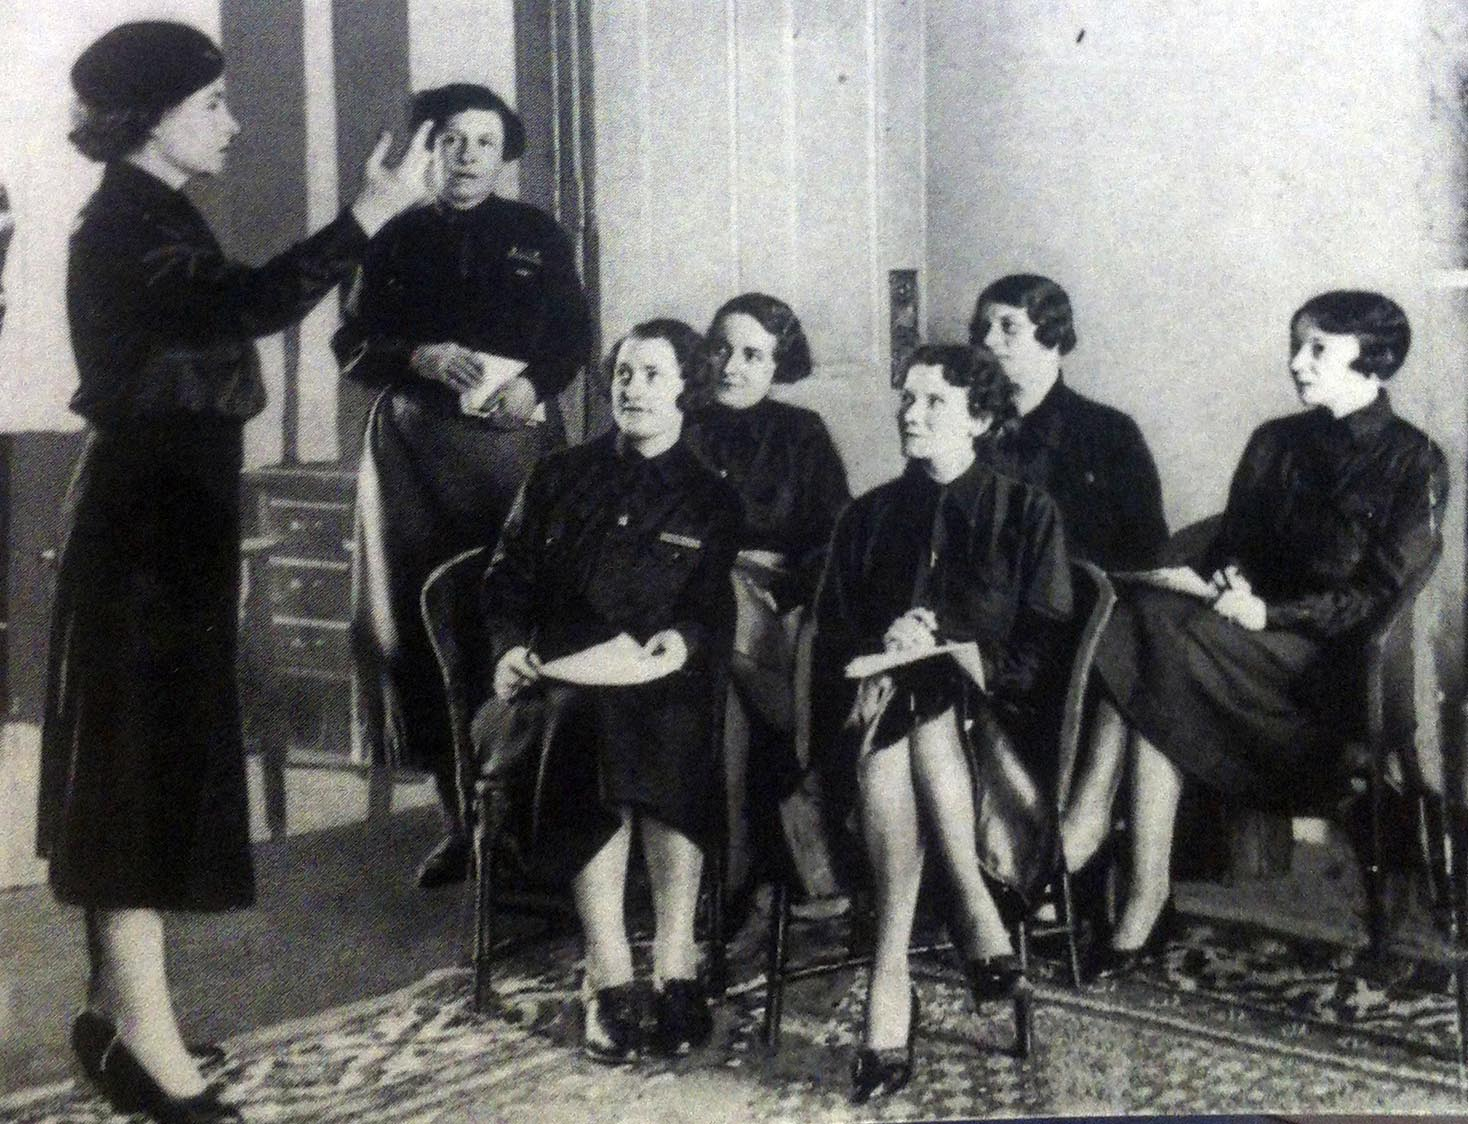 Training at the Women's BUF HQ. Mary Richardson is standing at the back.